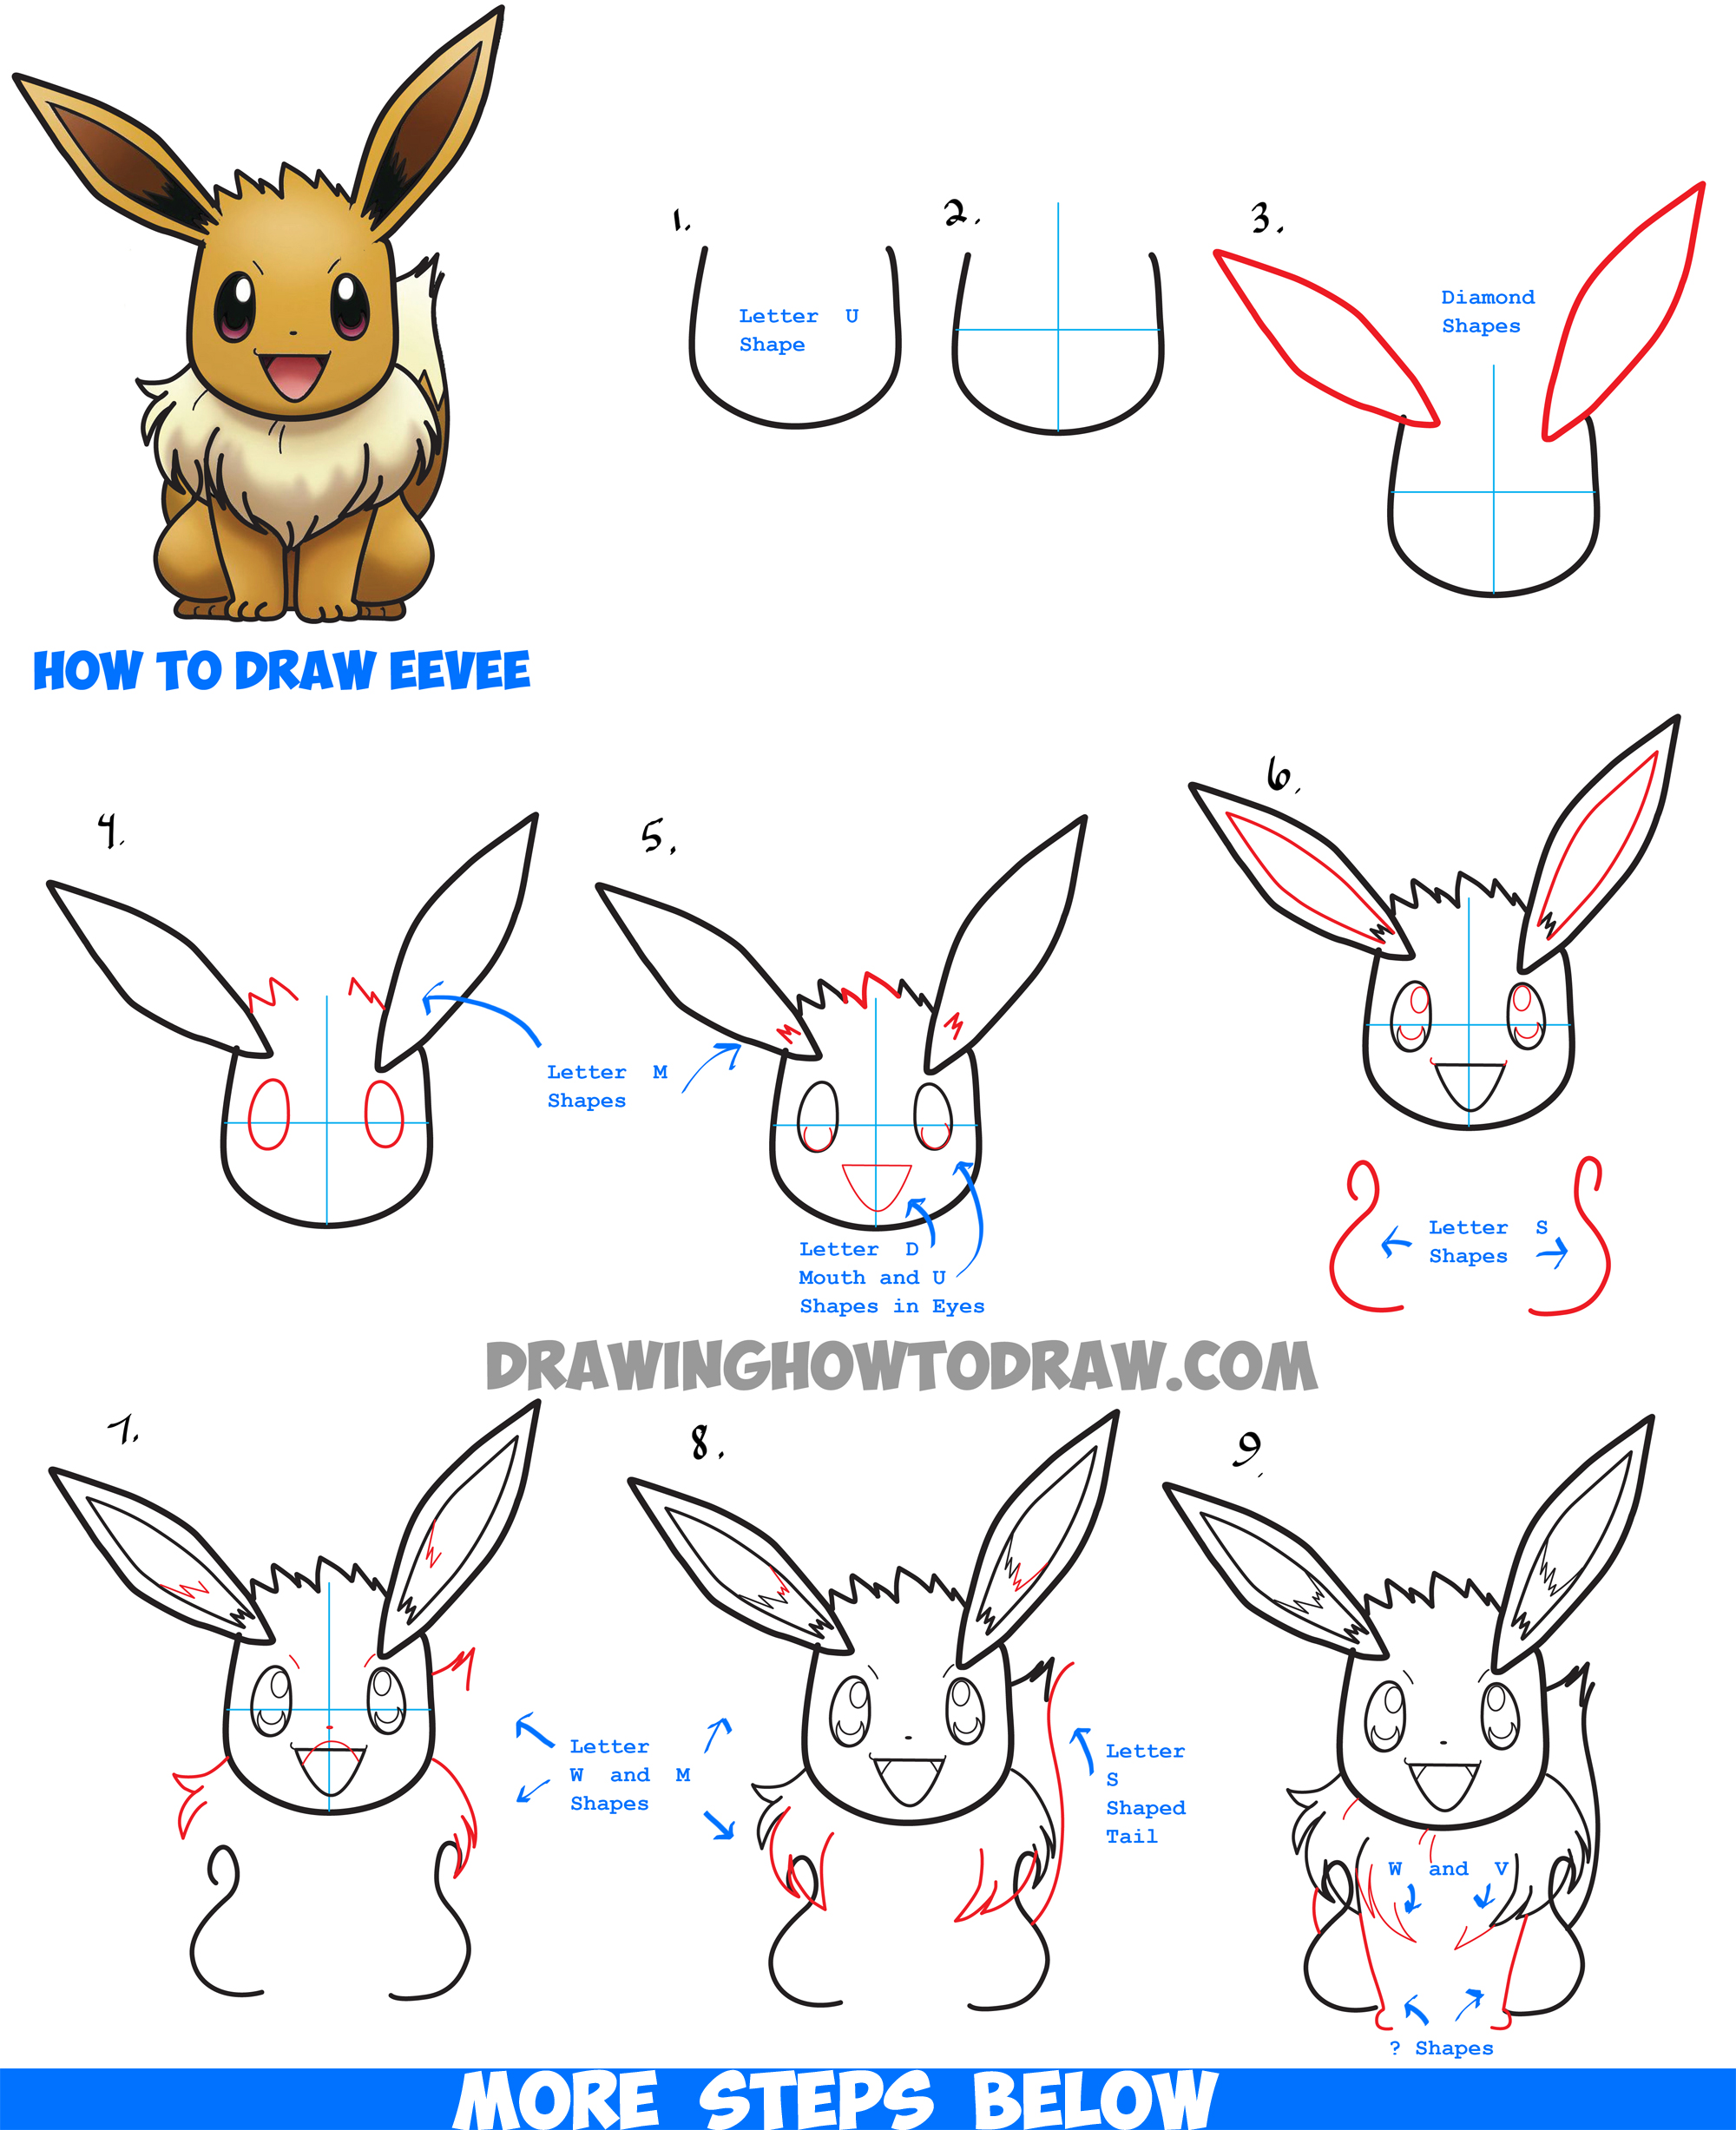 how to draw eevee from pokemon with easy step by step